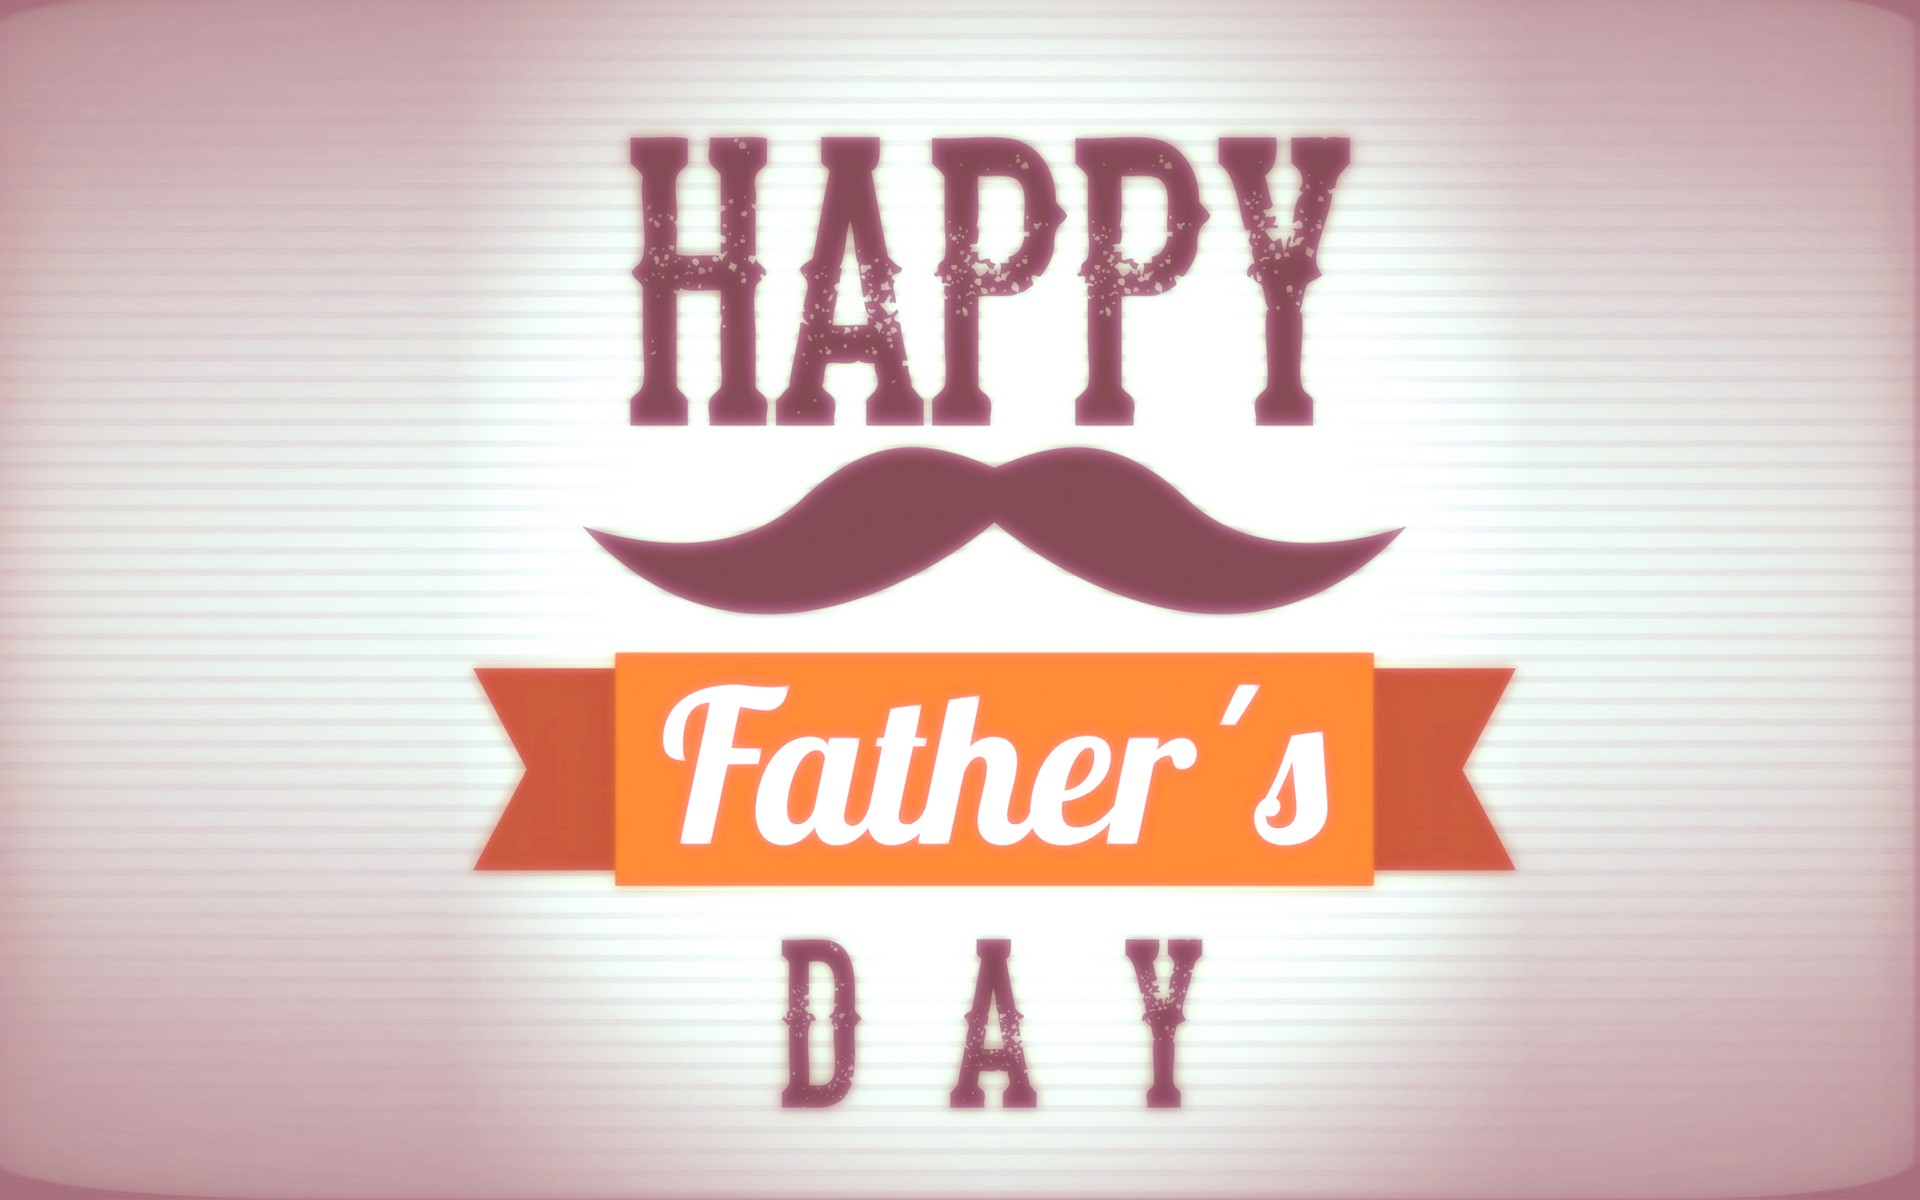 Fathers Day Wallpapers For PC Desktop laptop